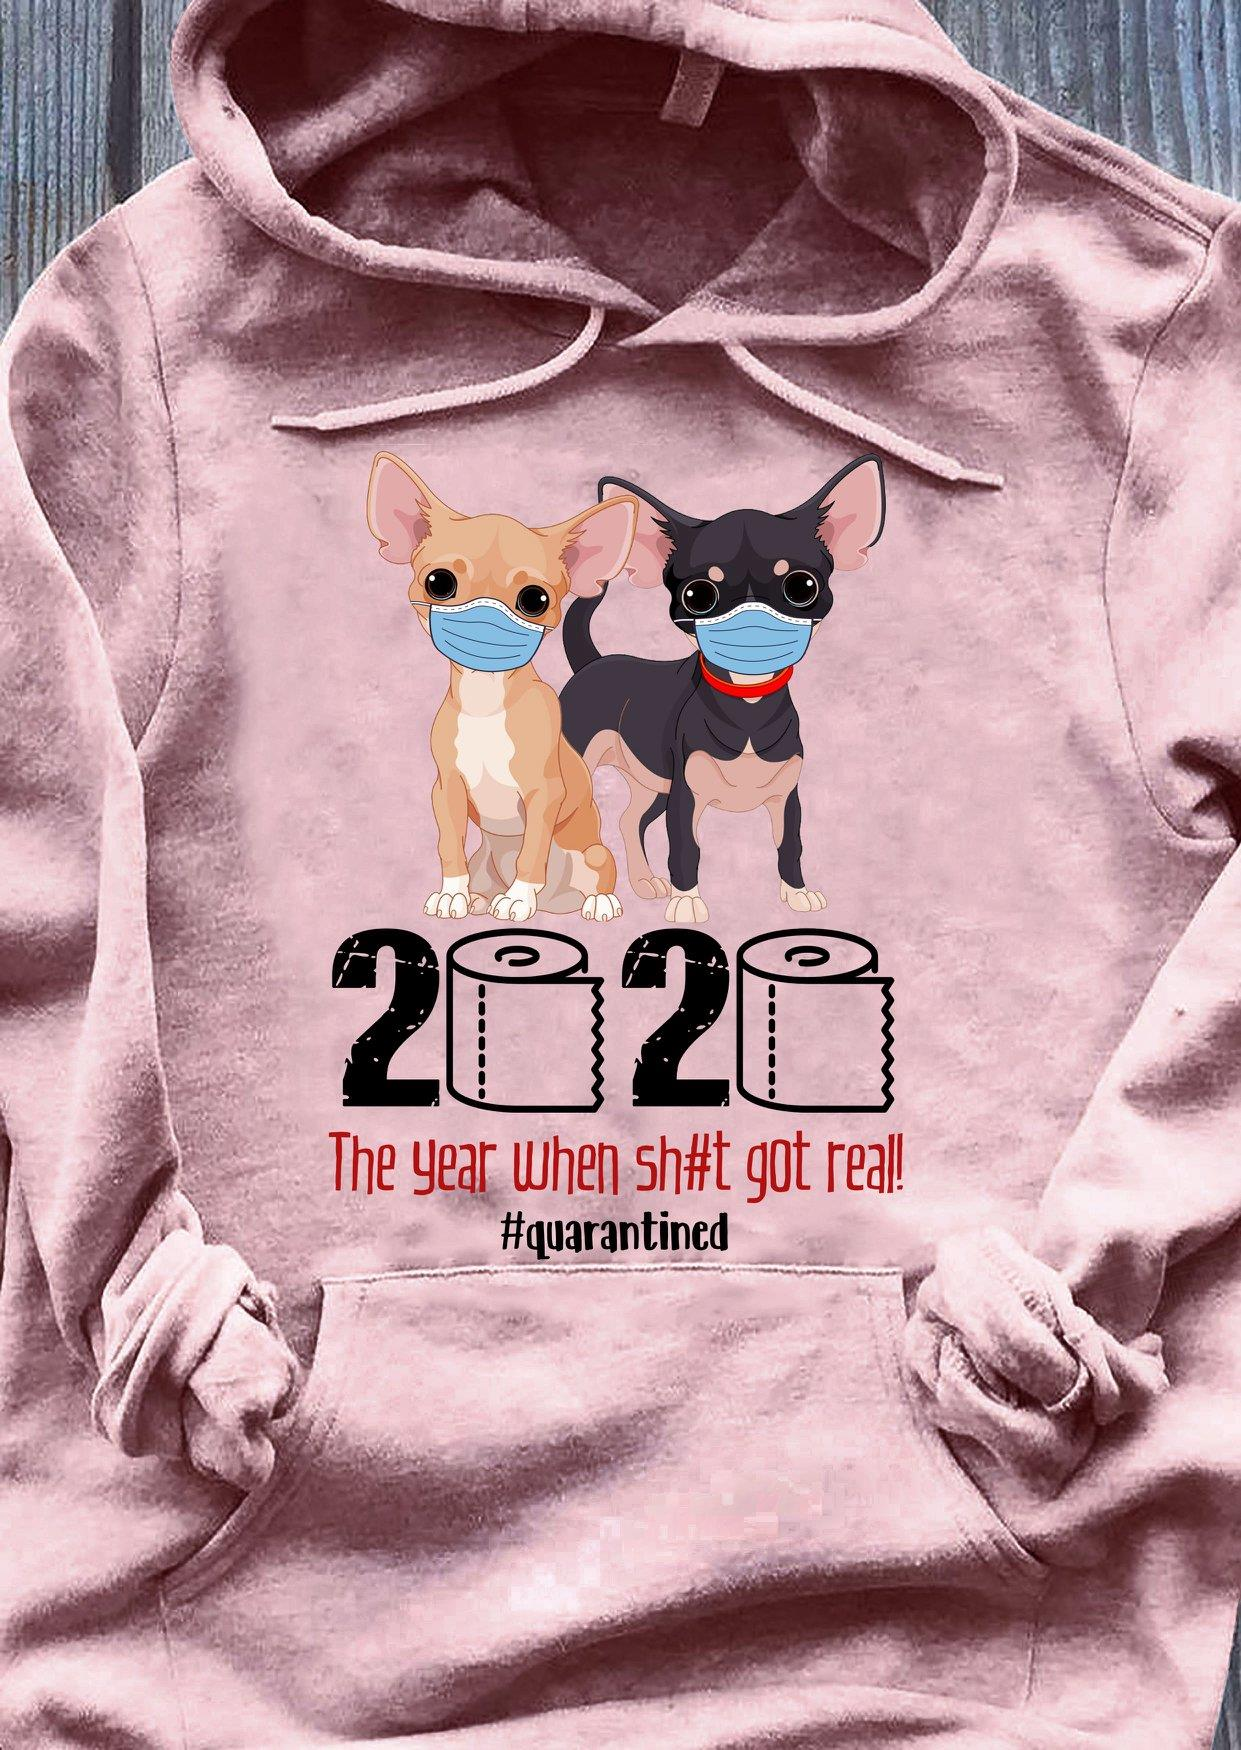 Chihuahua The Year When Sh-t Got Real Quarantined Shirt